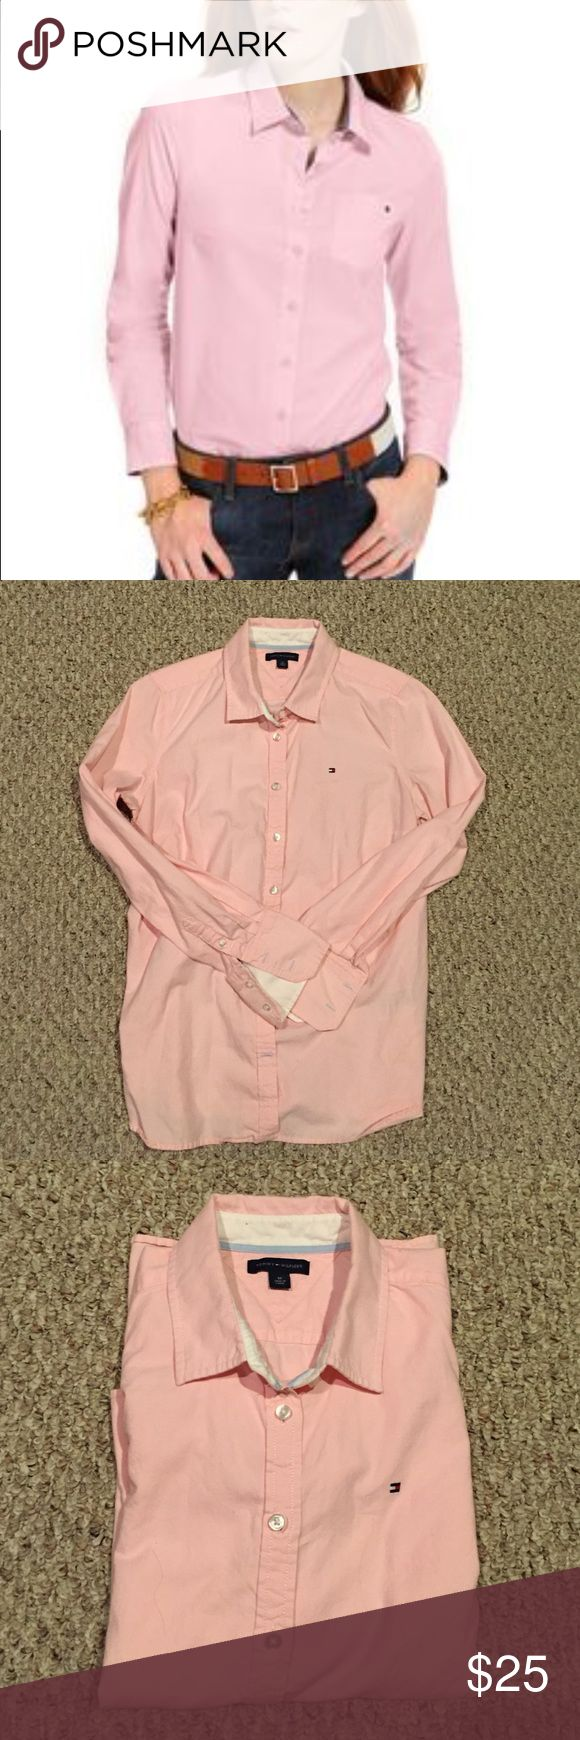 Timeless - Classic Women's Oxford Shirt Classic oxford. Perfect for any occasion. This TH shirt is in excellent condition.  Details: cotton, machine washable, button front closures. A must have :) Tommy Hilfiger Tops Button Down Shirts